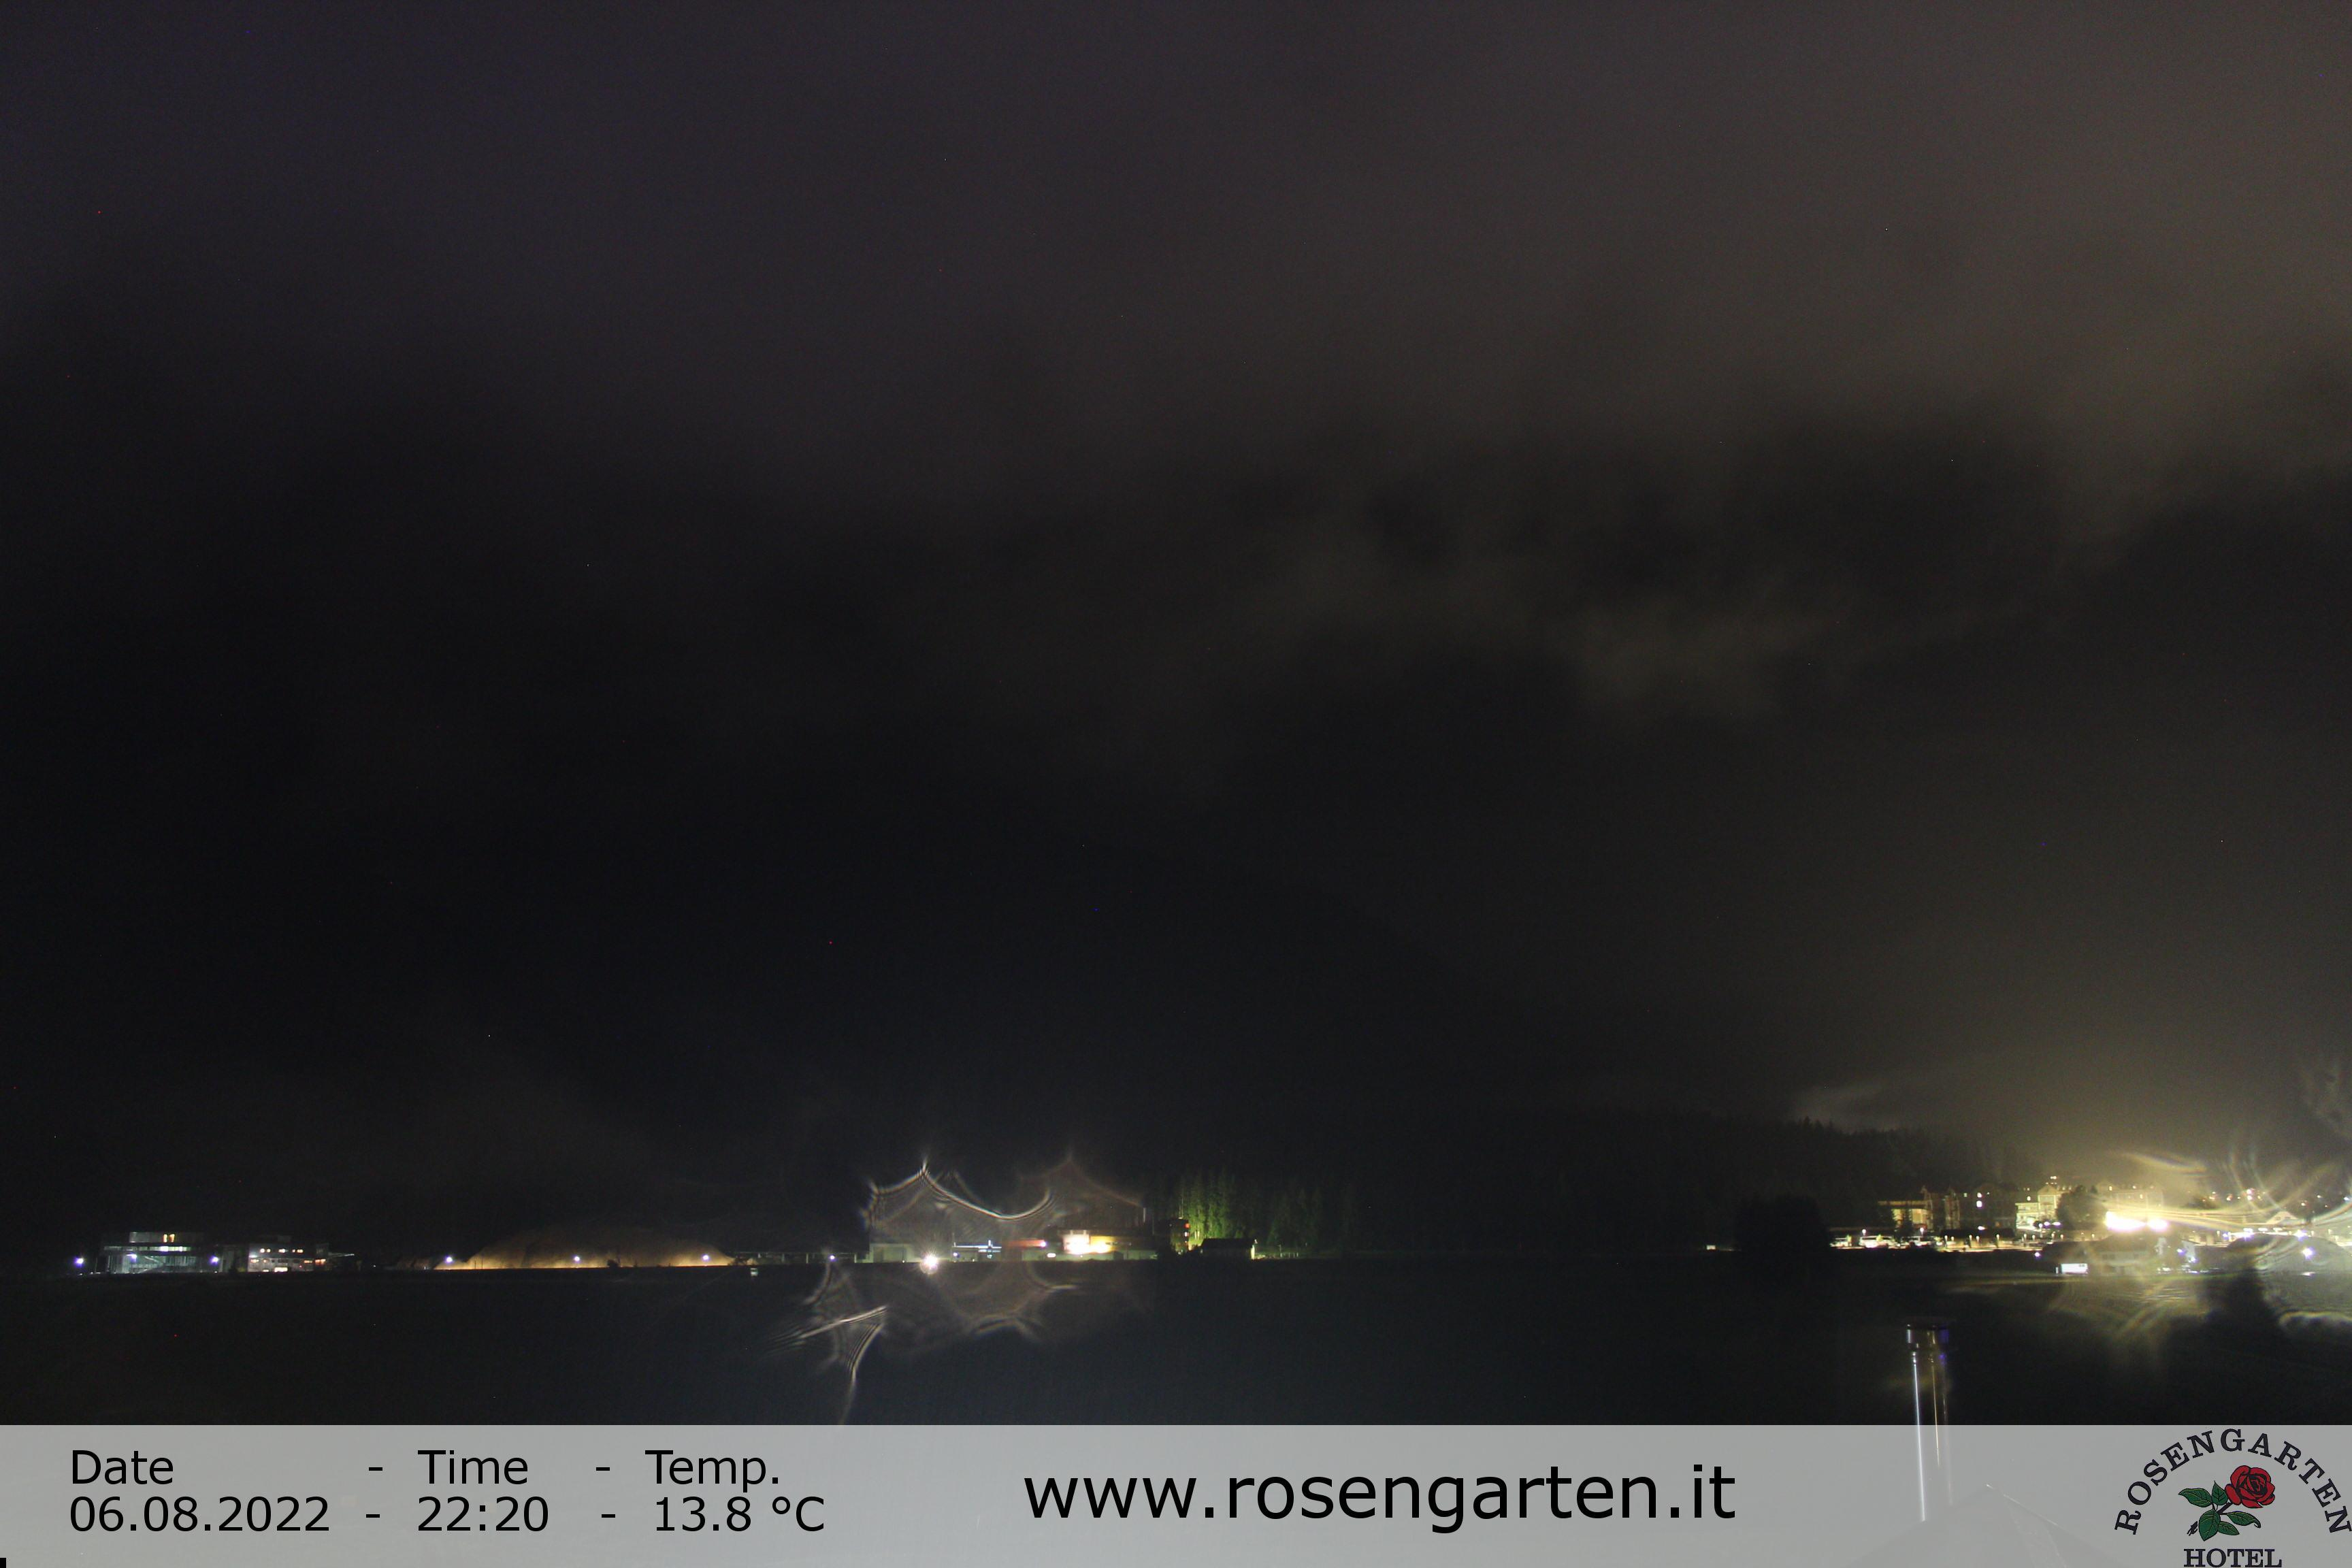 http://webcam.rosengarten.it/webcam.asp